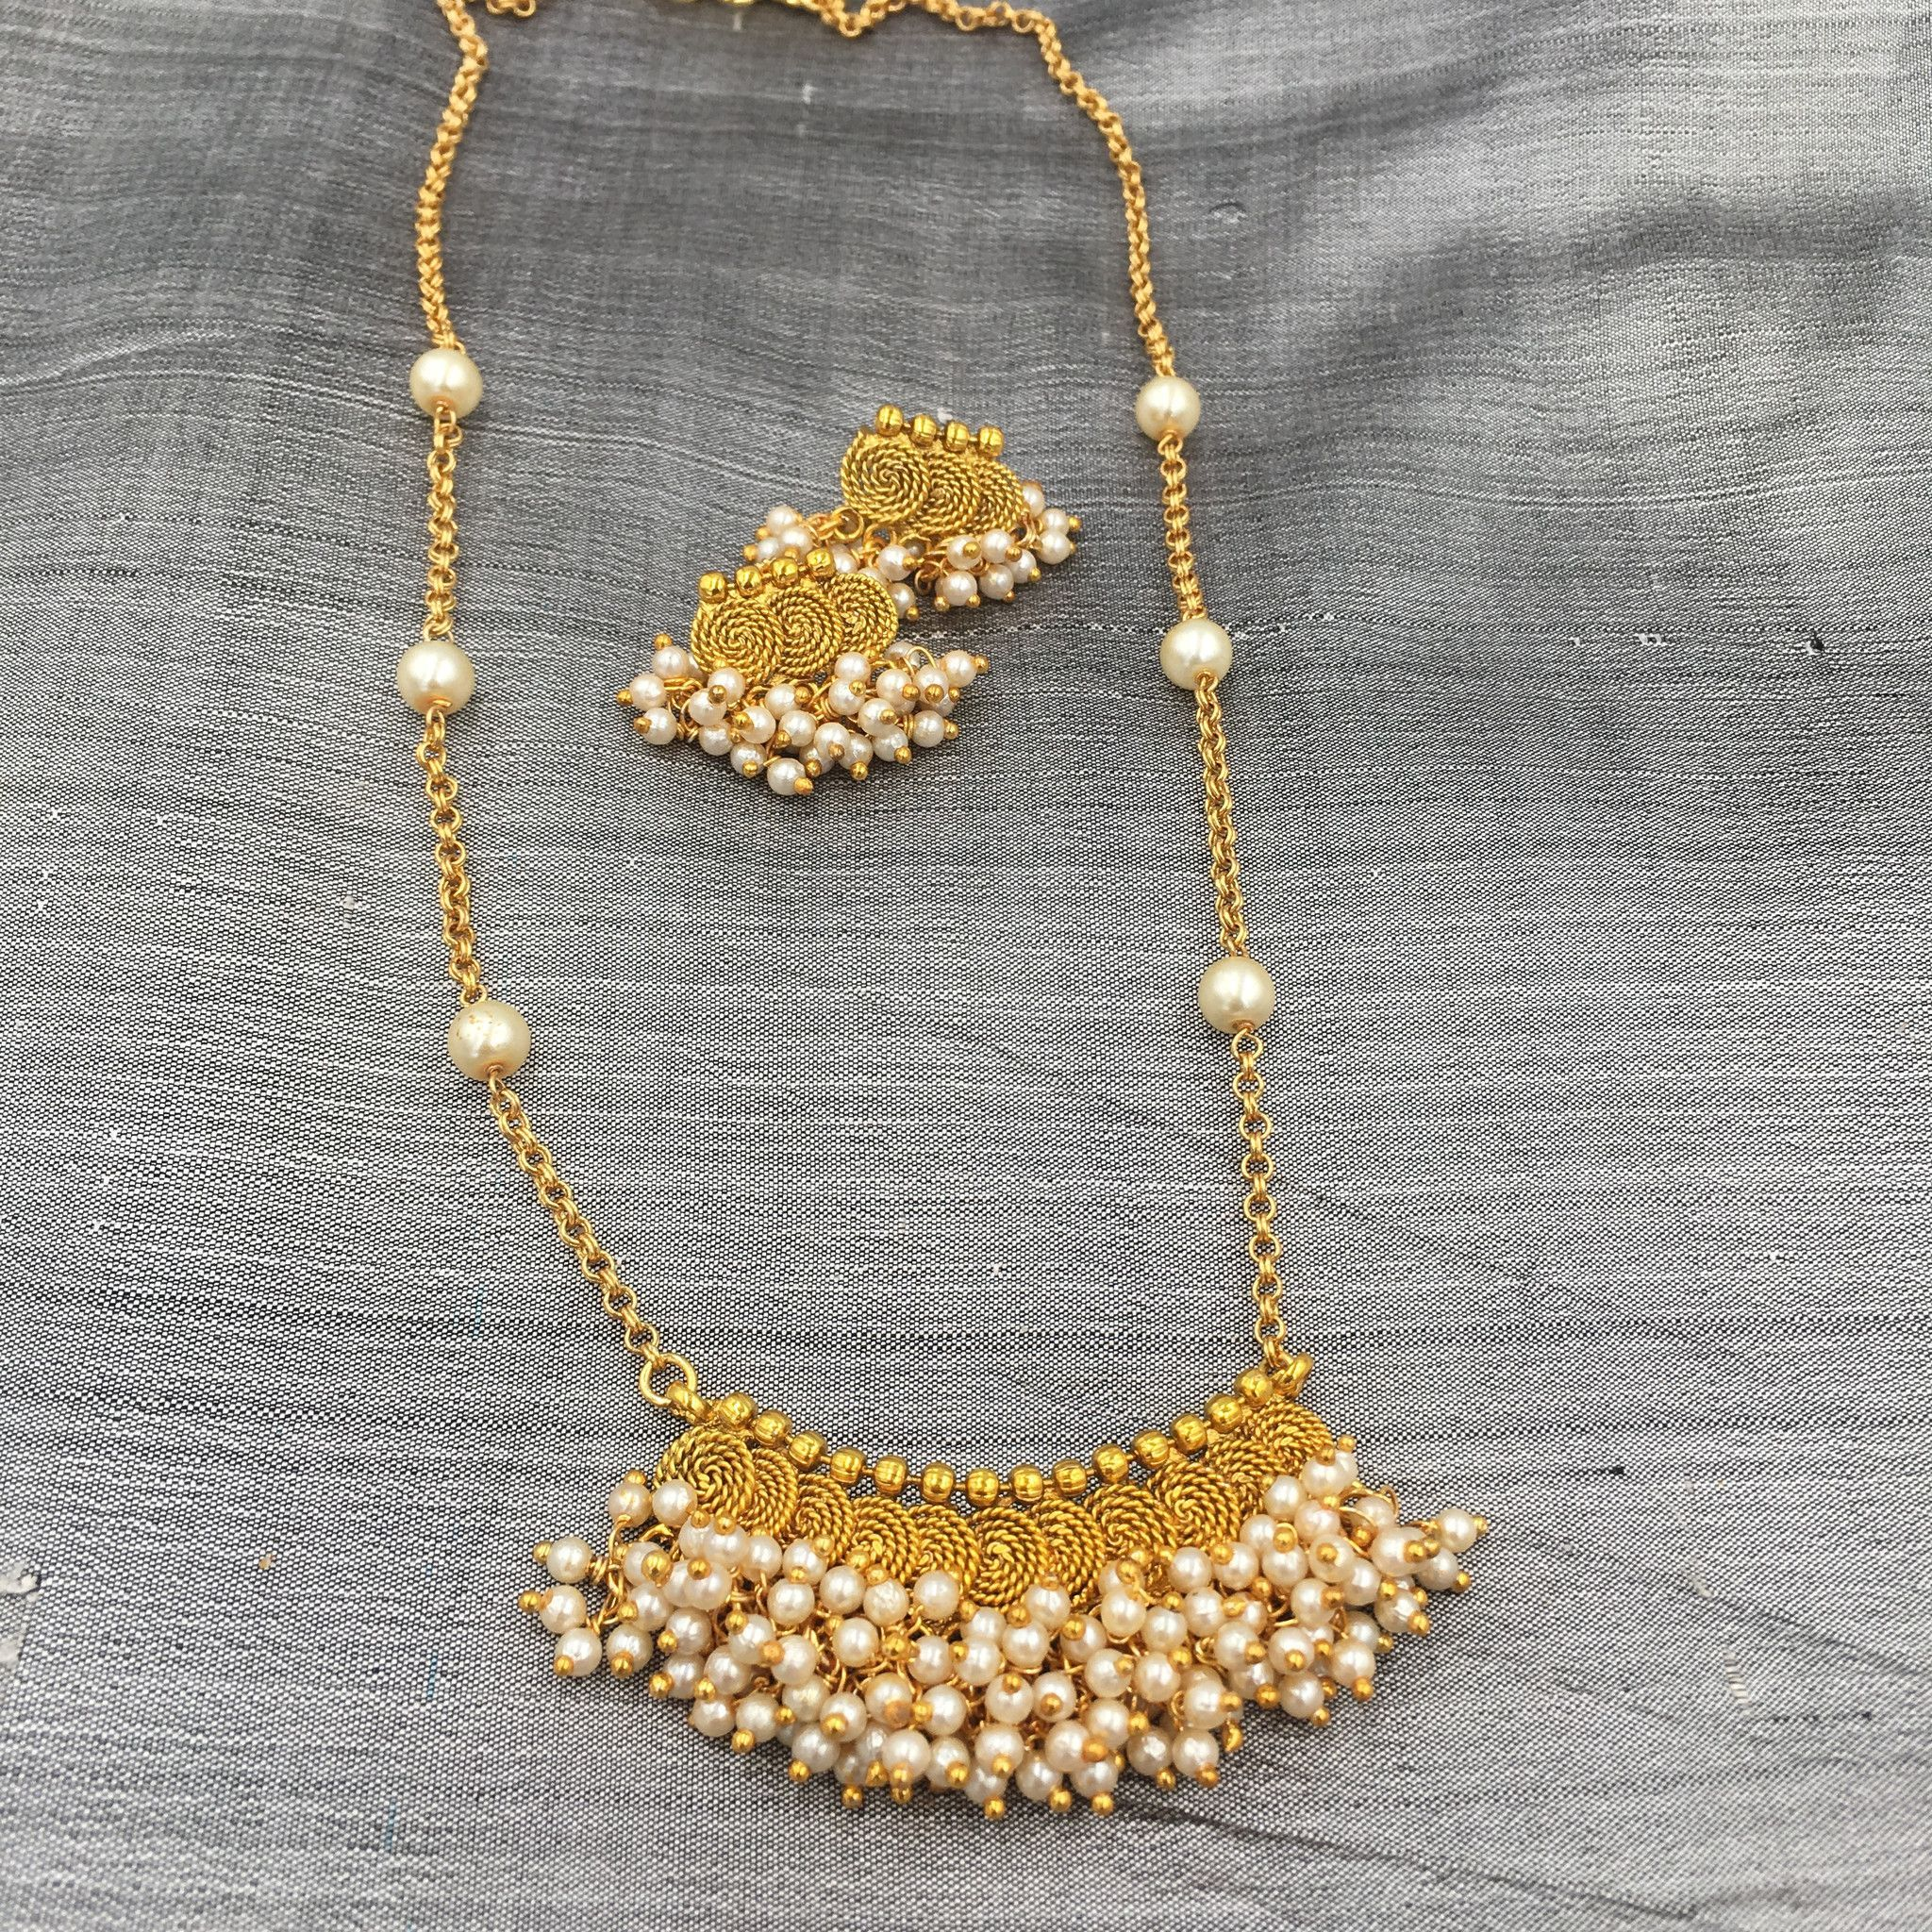 Clustered moti with coins ball chain necklace jewellery